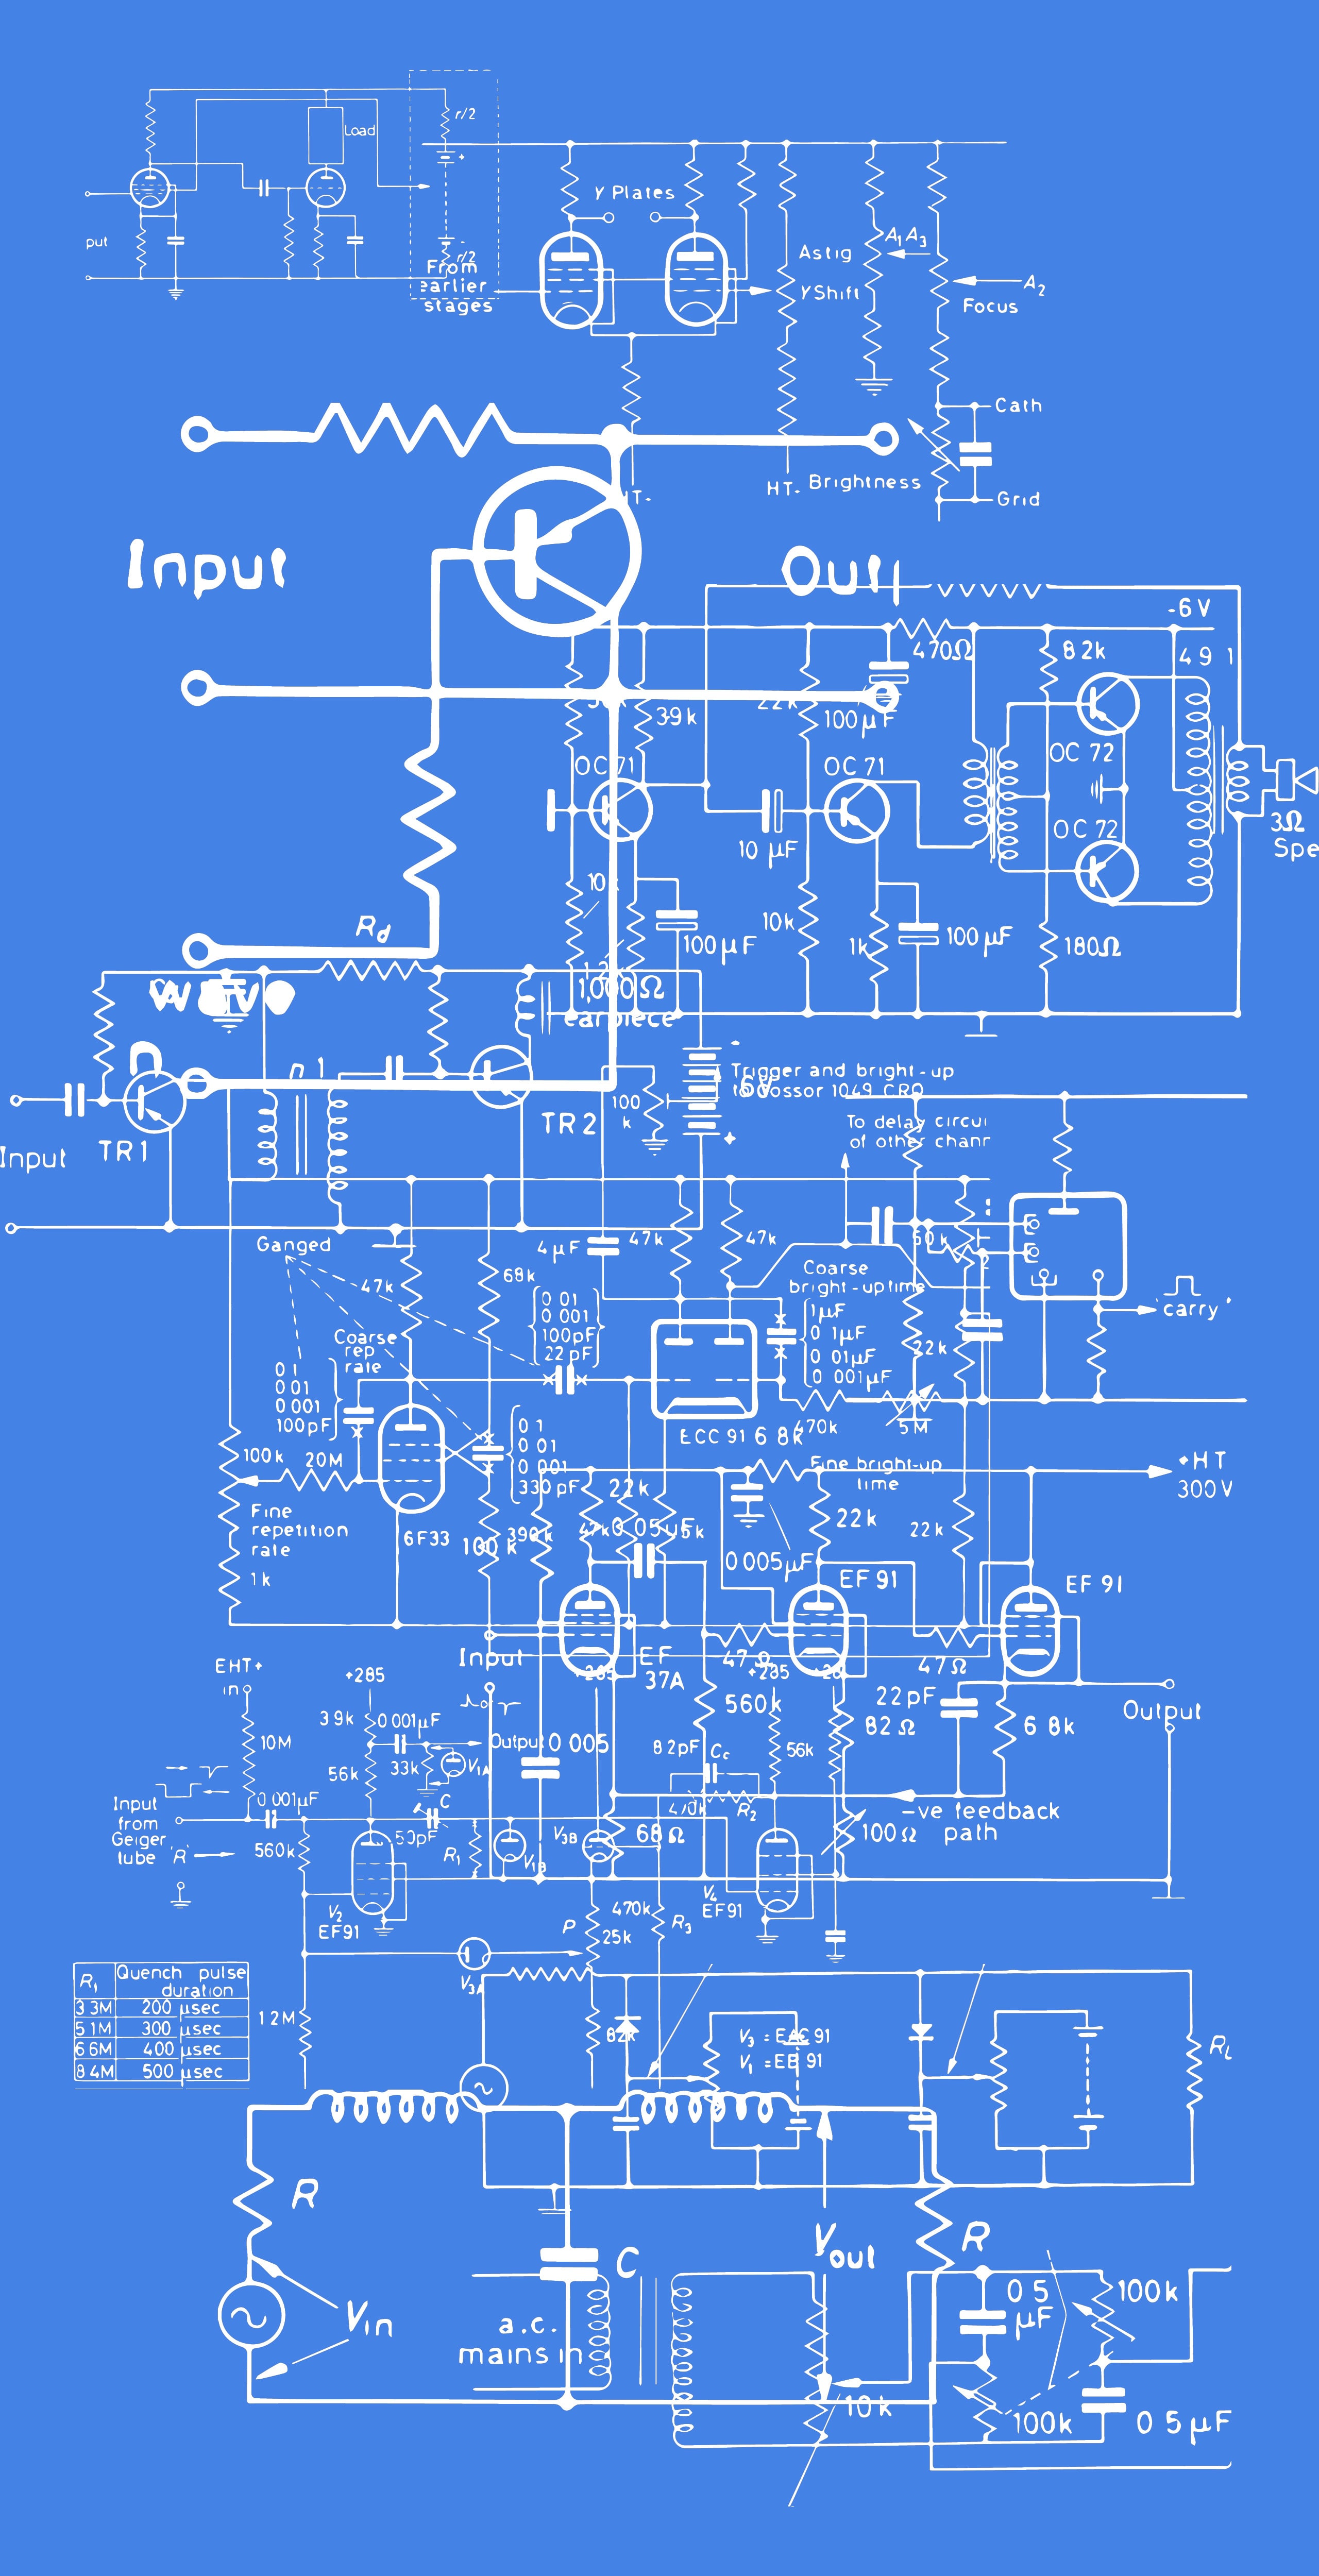 Vintage Electrical Circuits Illustrations [40 Itens] - large 2 2